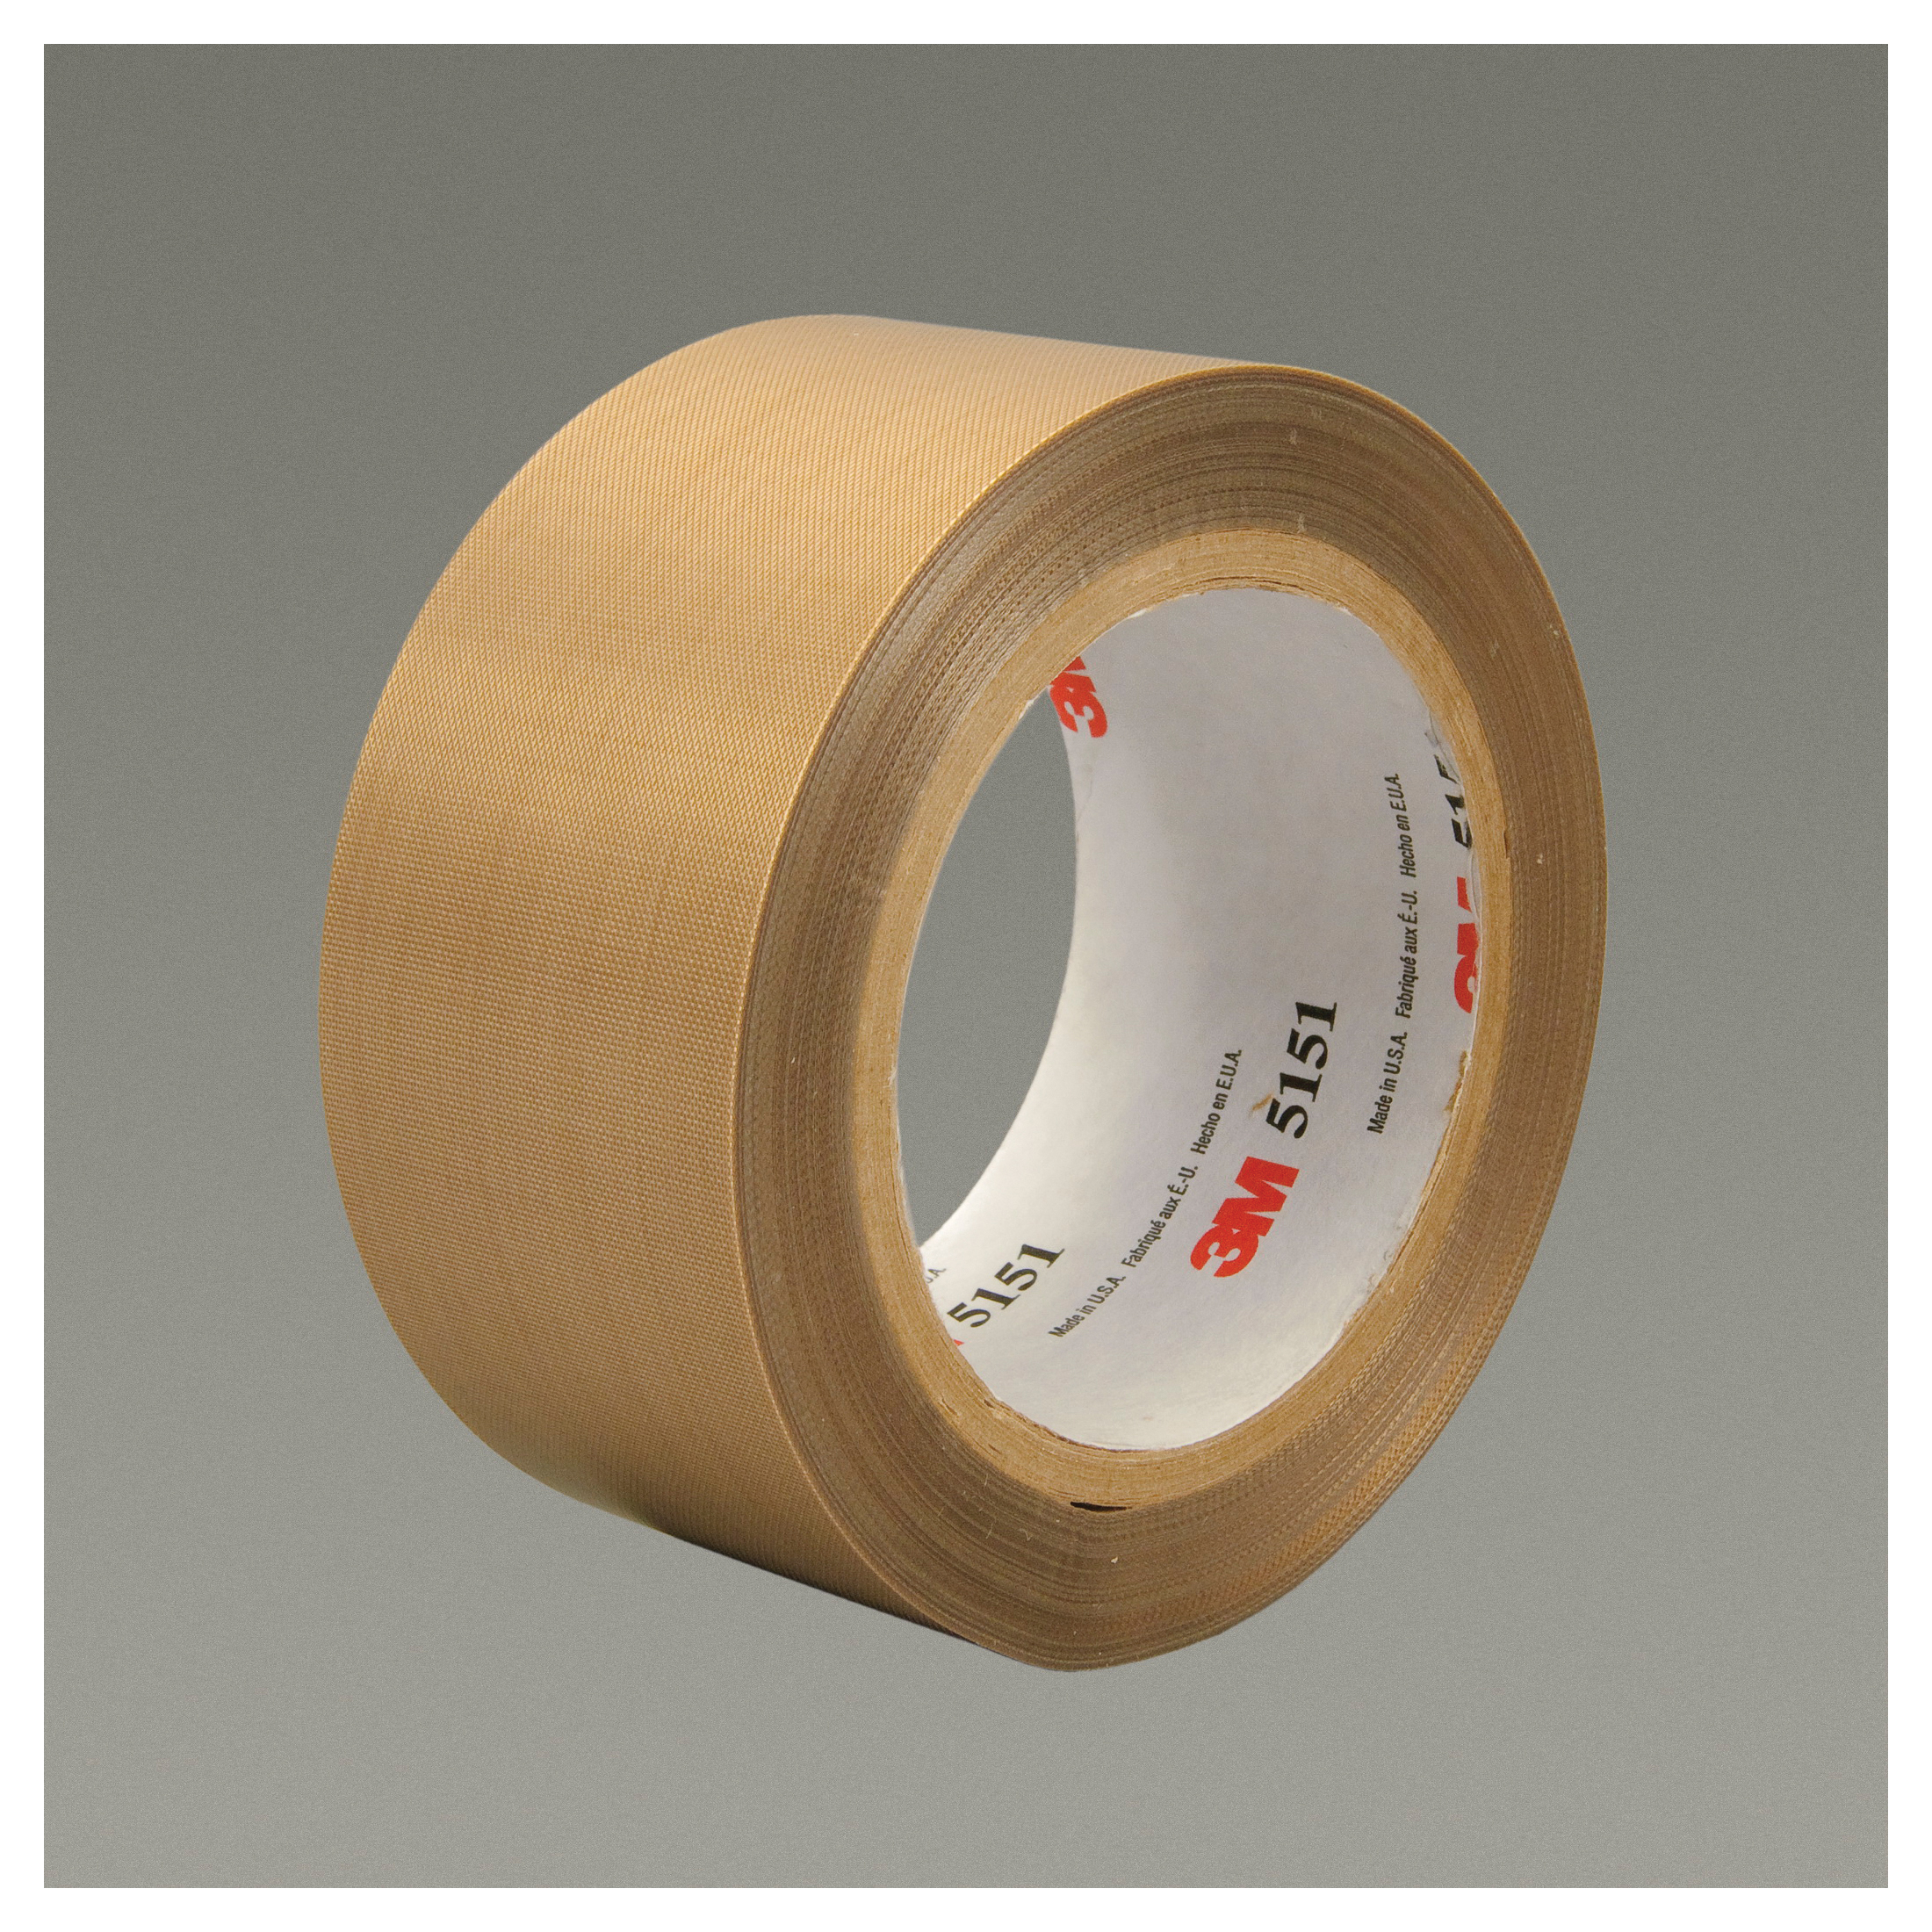 3M™ 021200-45630 General Purpose Glass Cloth Tape, 36 yd L x 3/4 in W, 5.3 mil THK, Silicon Adhesive, Glass Cloth Impregnated with PTFE Backing, Light Brown